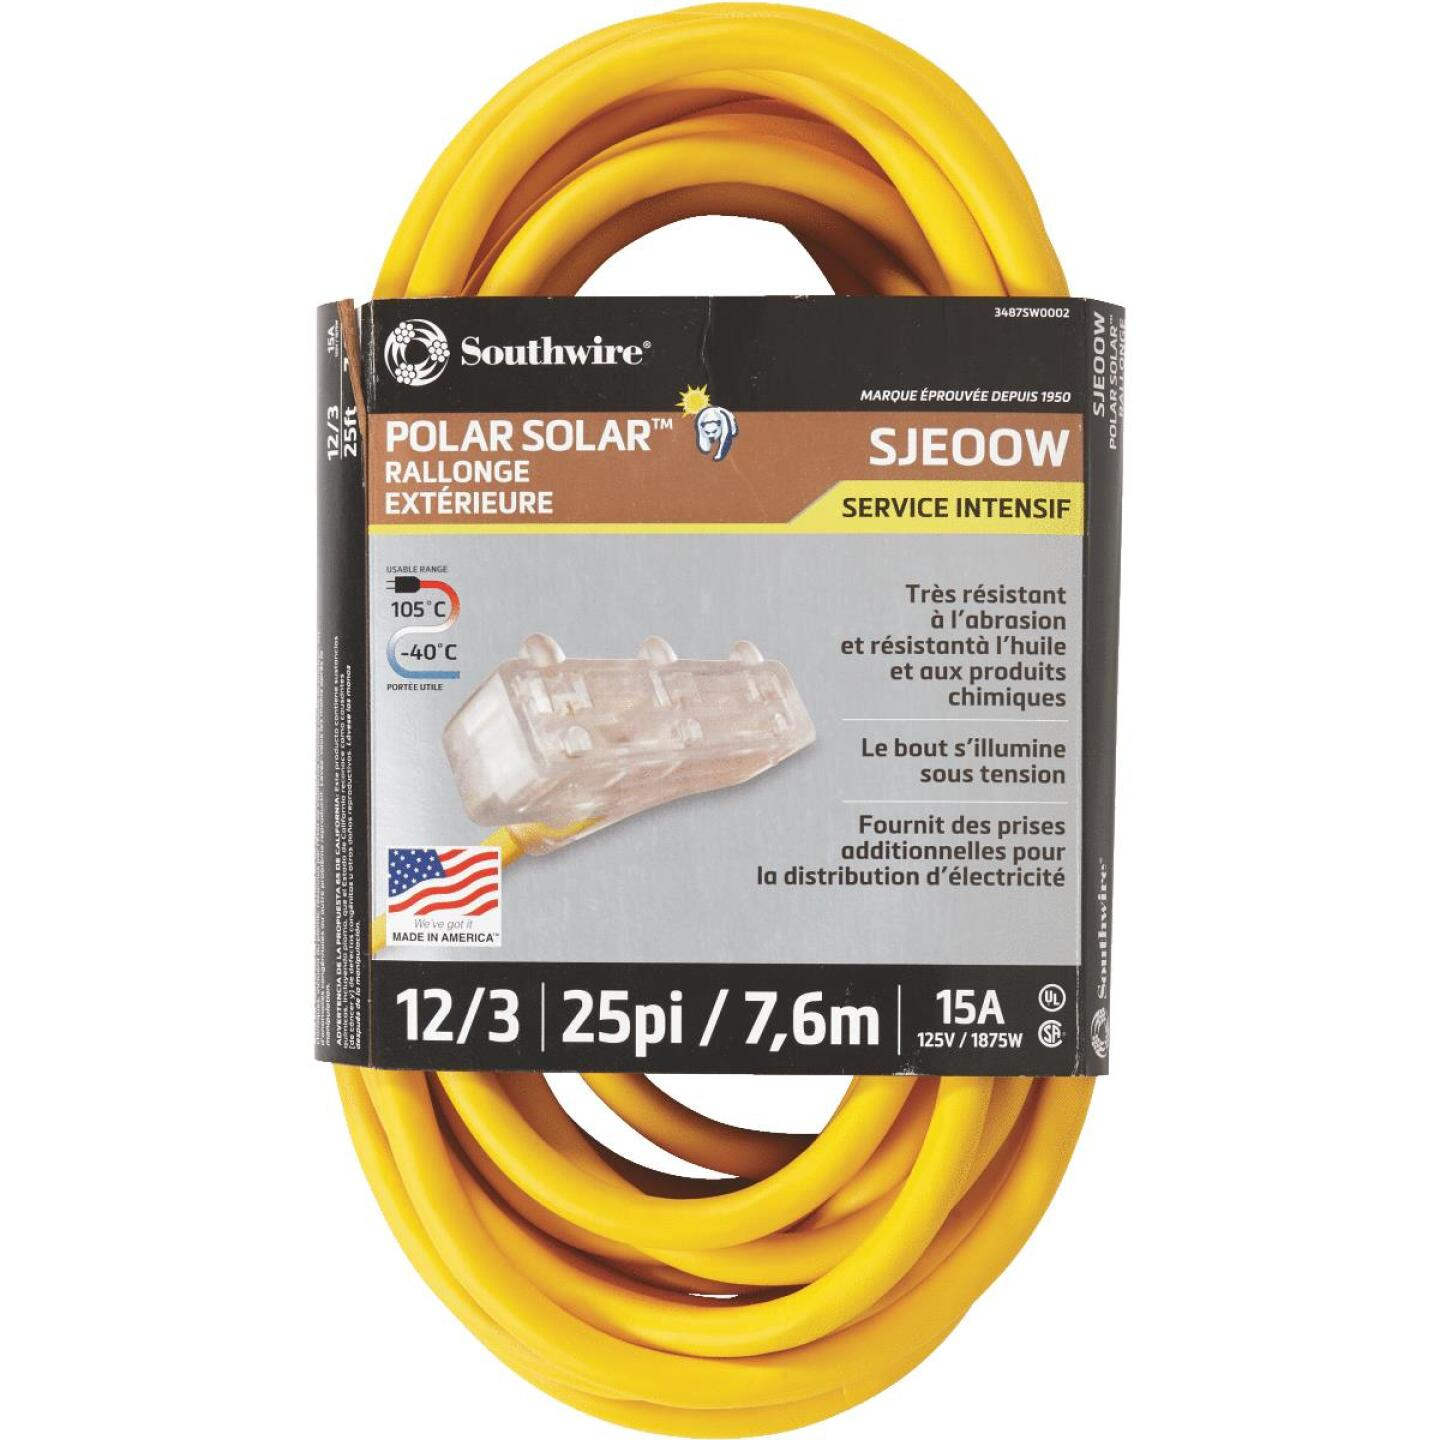 Coleman Cable Polar Solar 25 Ft. 12/3 Cold Weather 3-Outlet Extension Cord Image 3